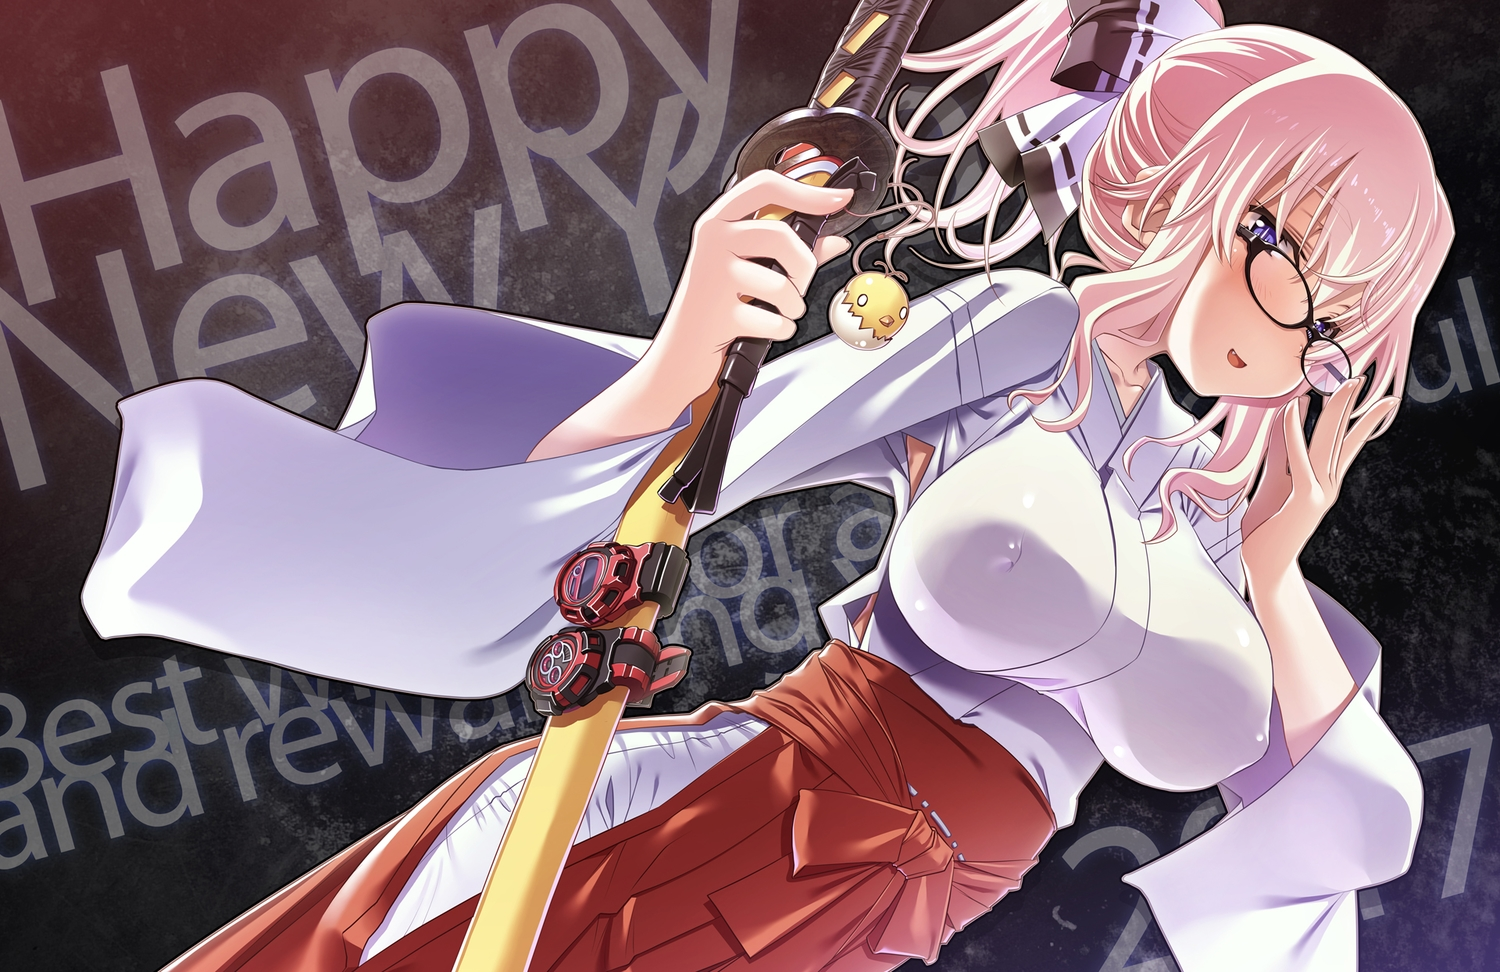 blush breasts erect_nipples fang glasses japanese_clothes katana long_hair miko original pink_hair purple_eyes sakuya_tsuitachi sword weapon